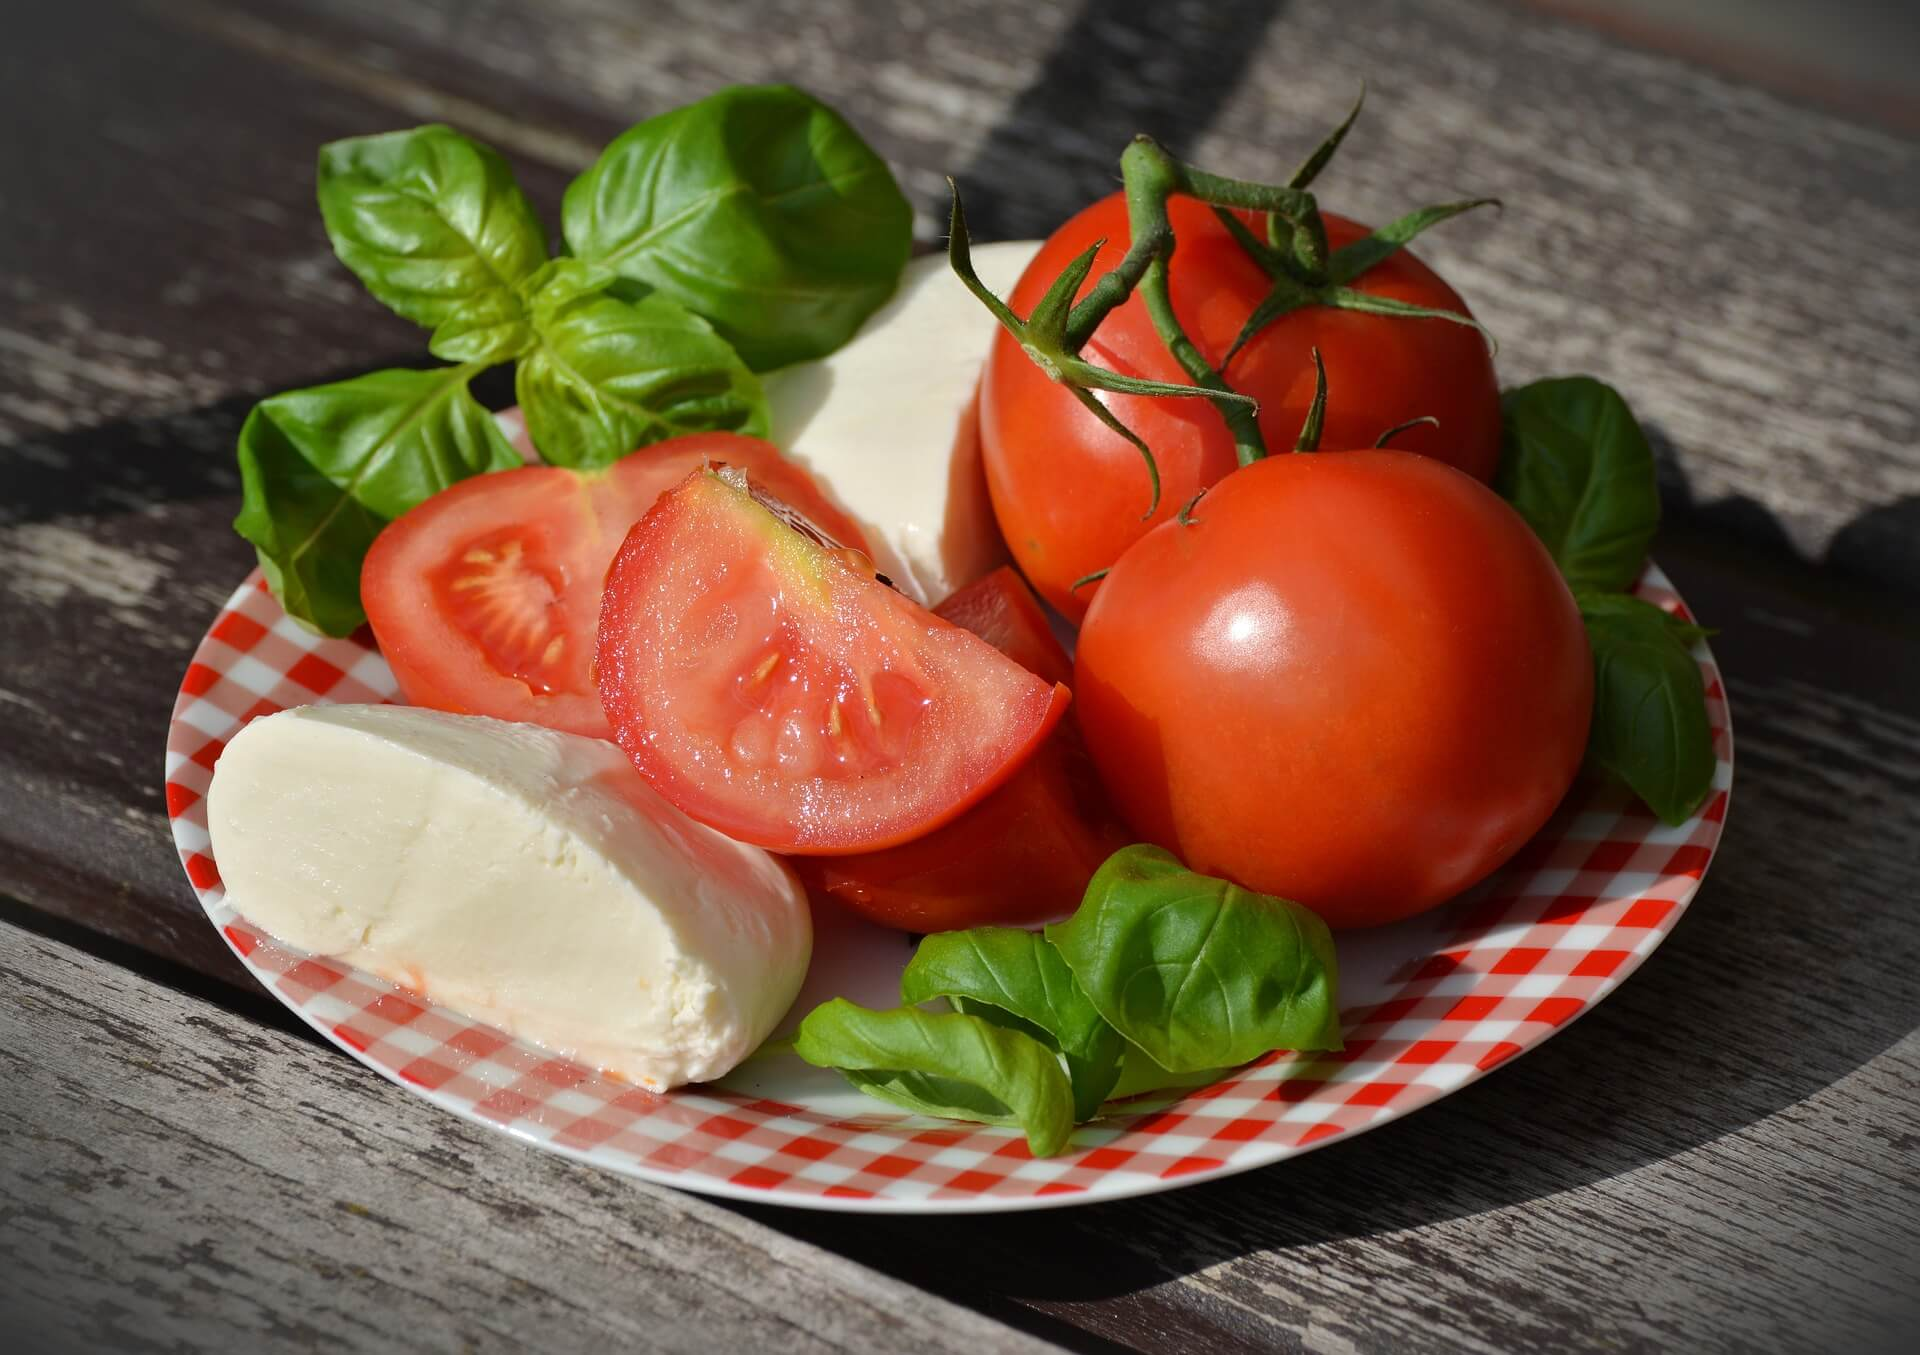 a plate of cheese and tomato